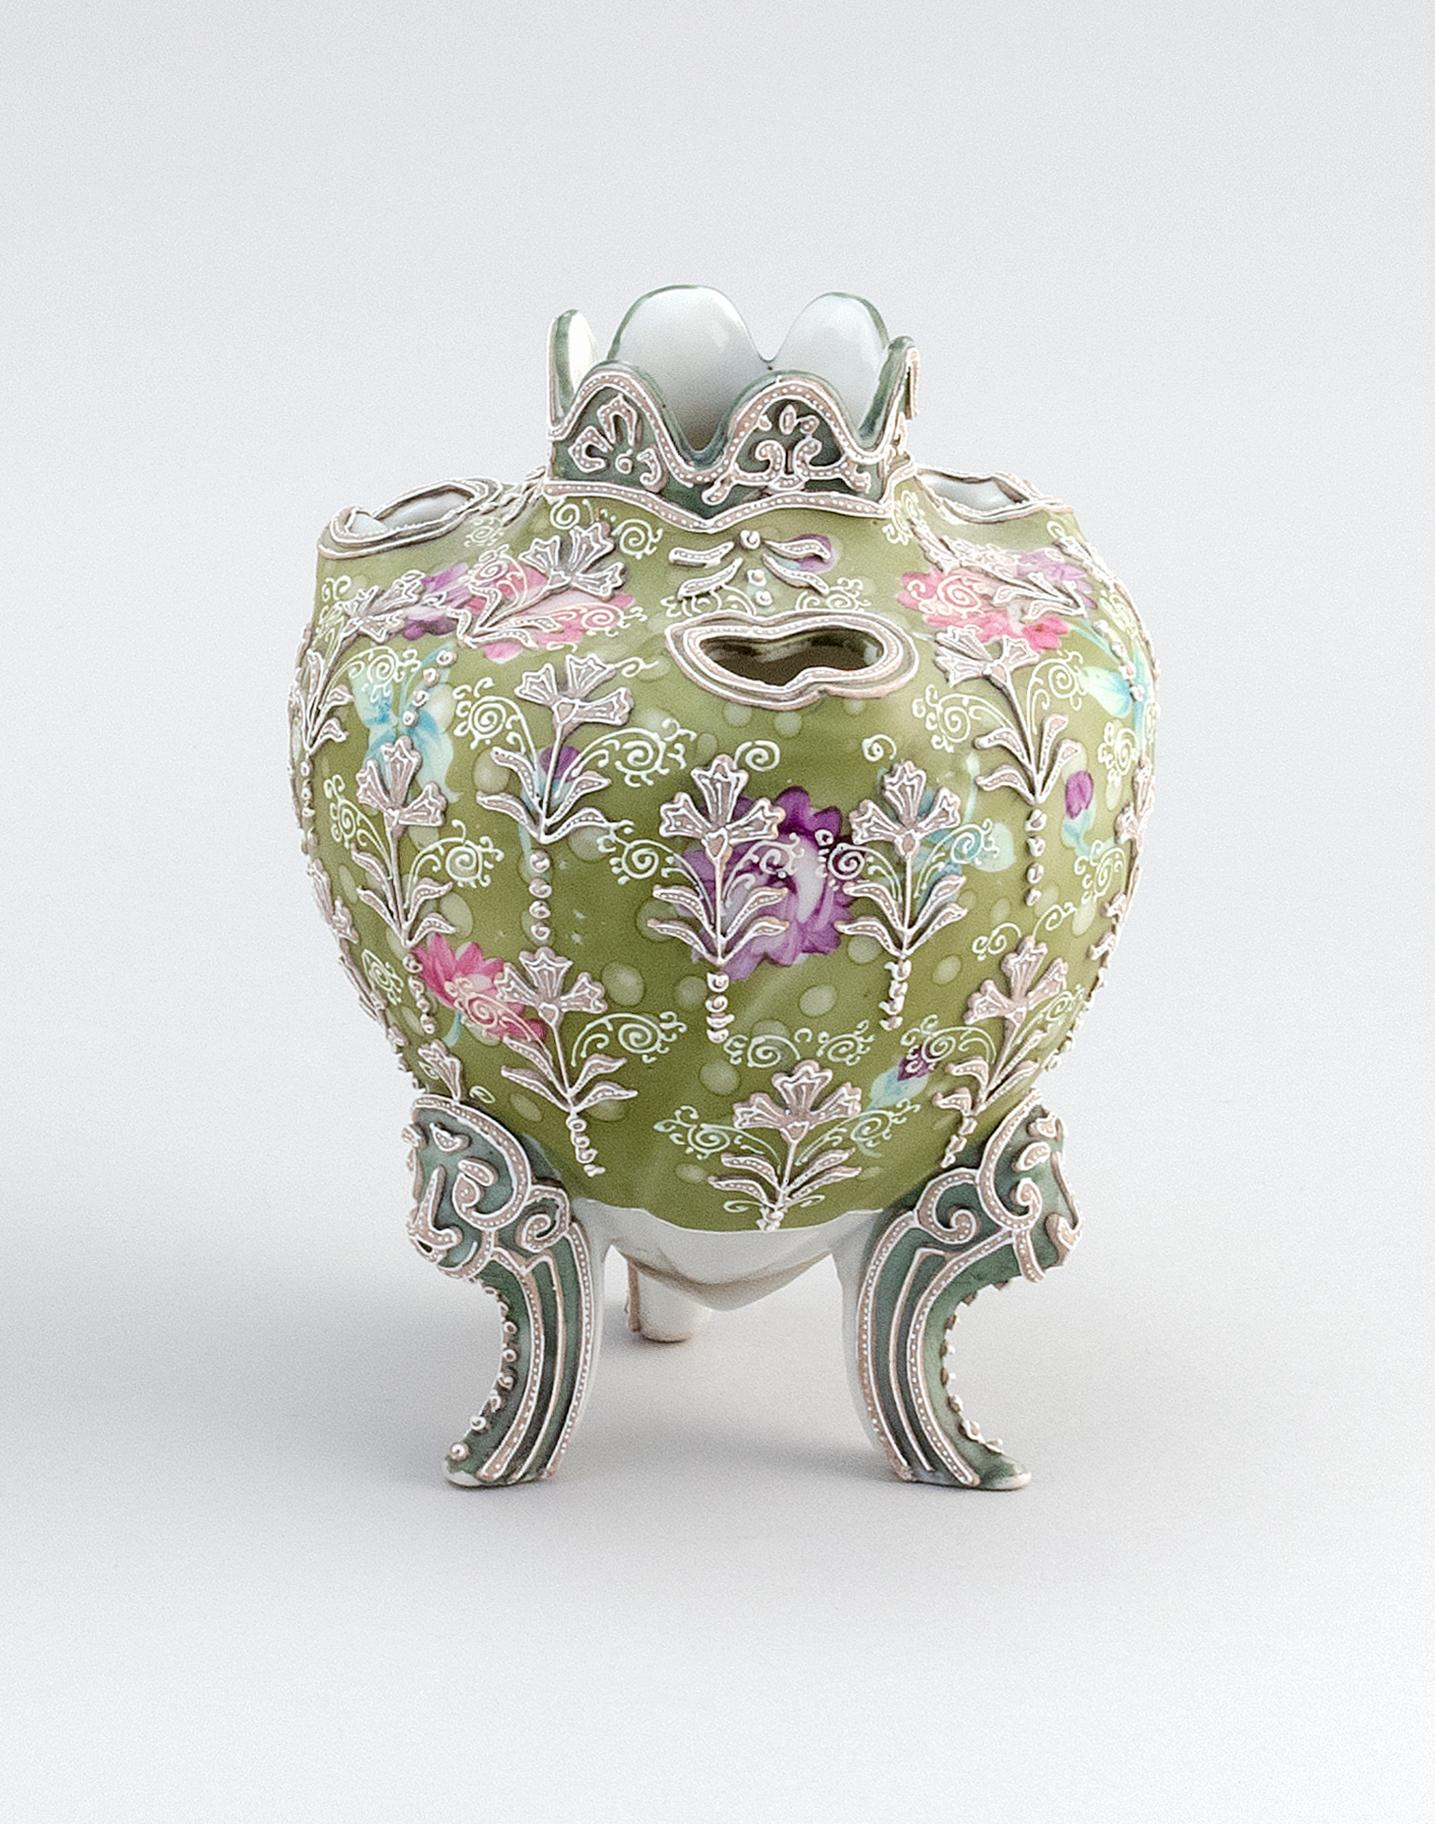 """MORIAGE NIPPON PORCELAIN NARCISSUS VASE Ovoid, with tripod base and floral decoration. Height 6.5""""."""